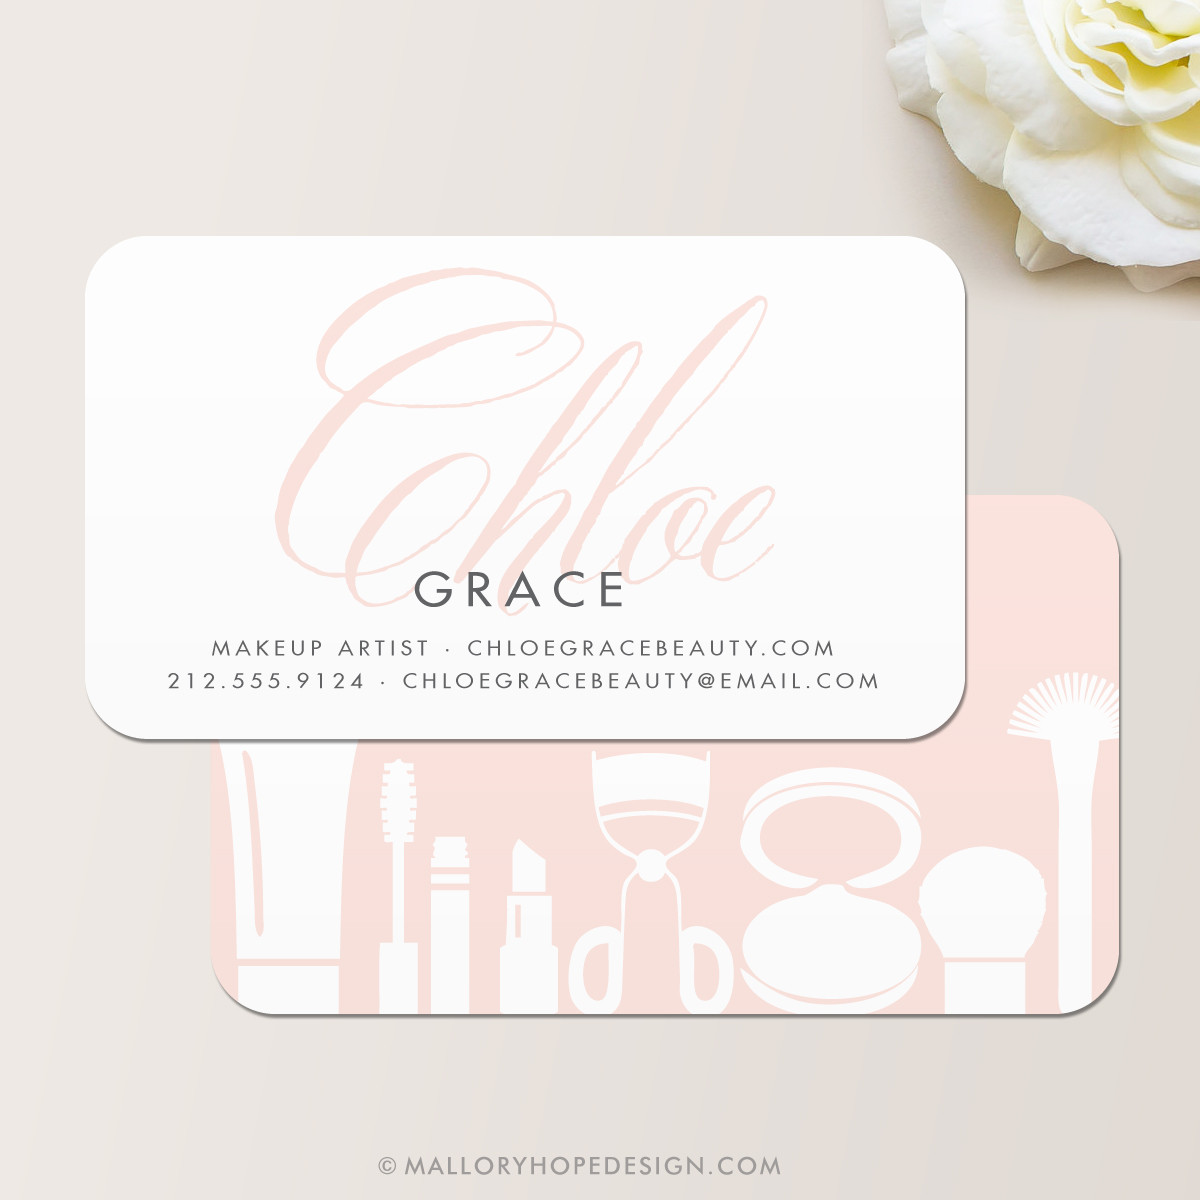 Makeup Artist Business Cards Wording Gallery - Card Design And Card ...